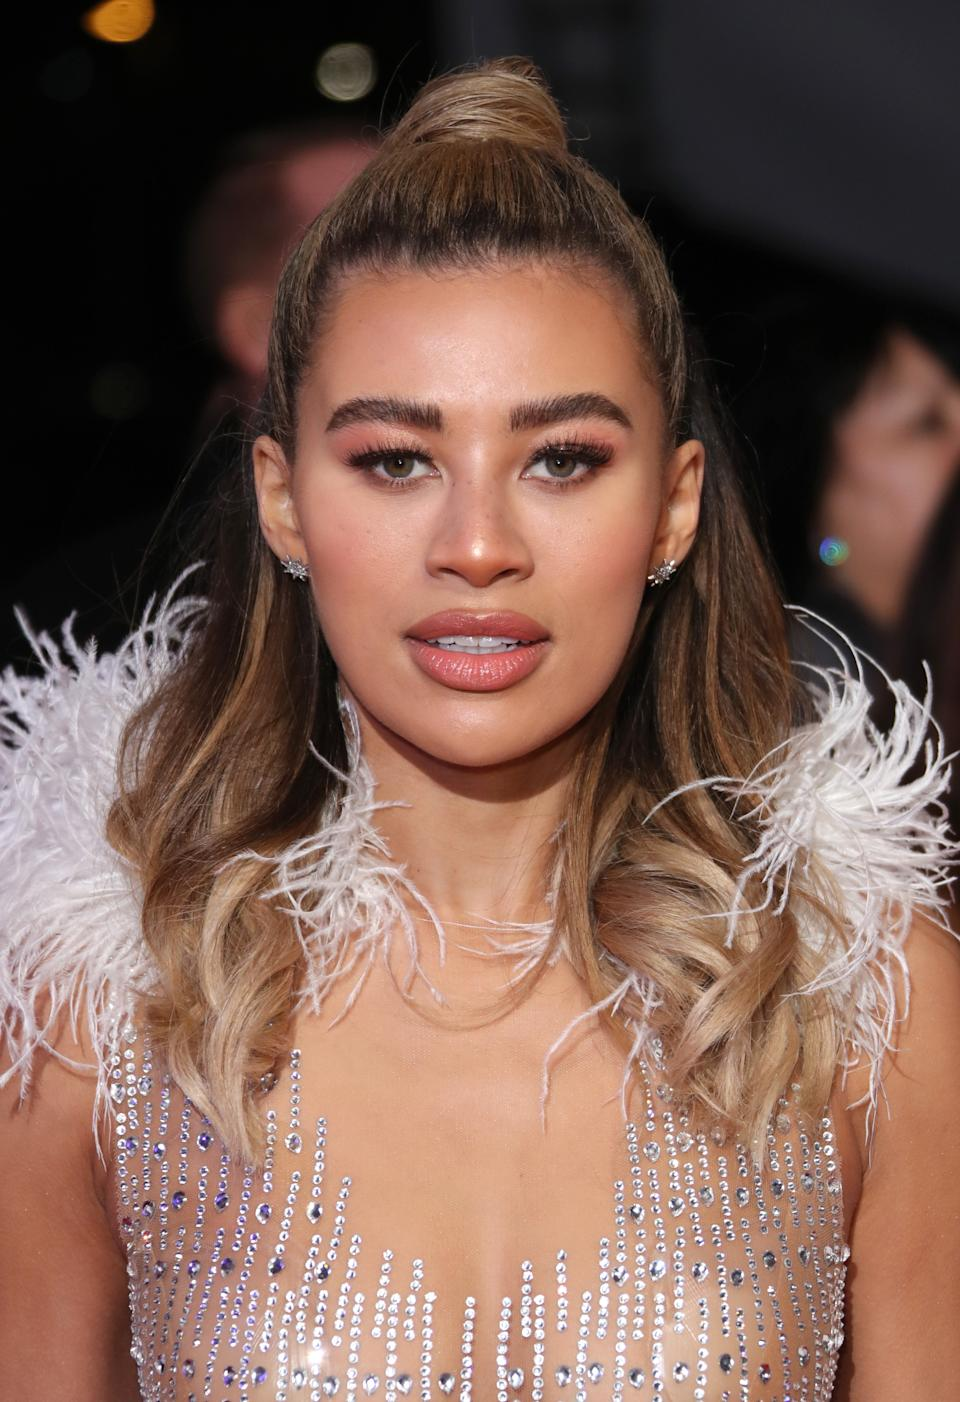 Montana Brown appeared on Love Island in 2017. (Photo by Mike Marsland/WireImage)